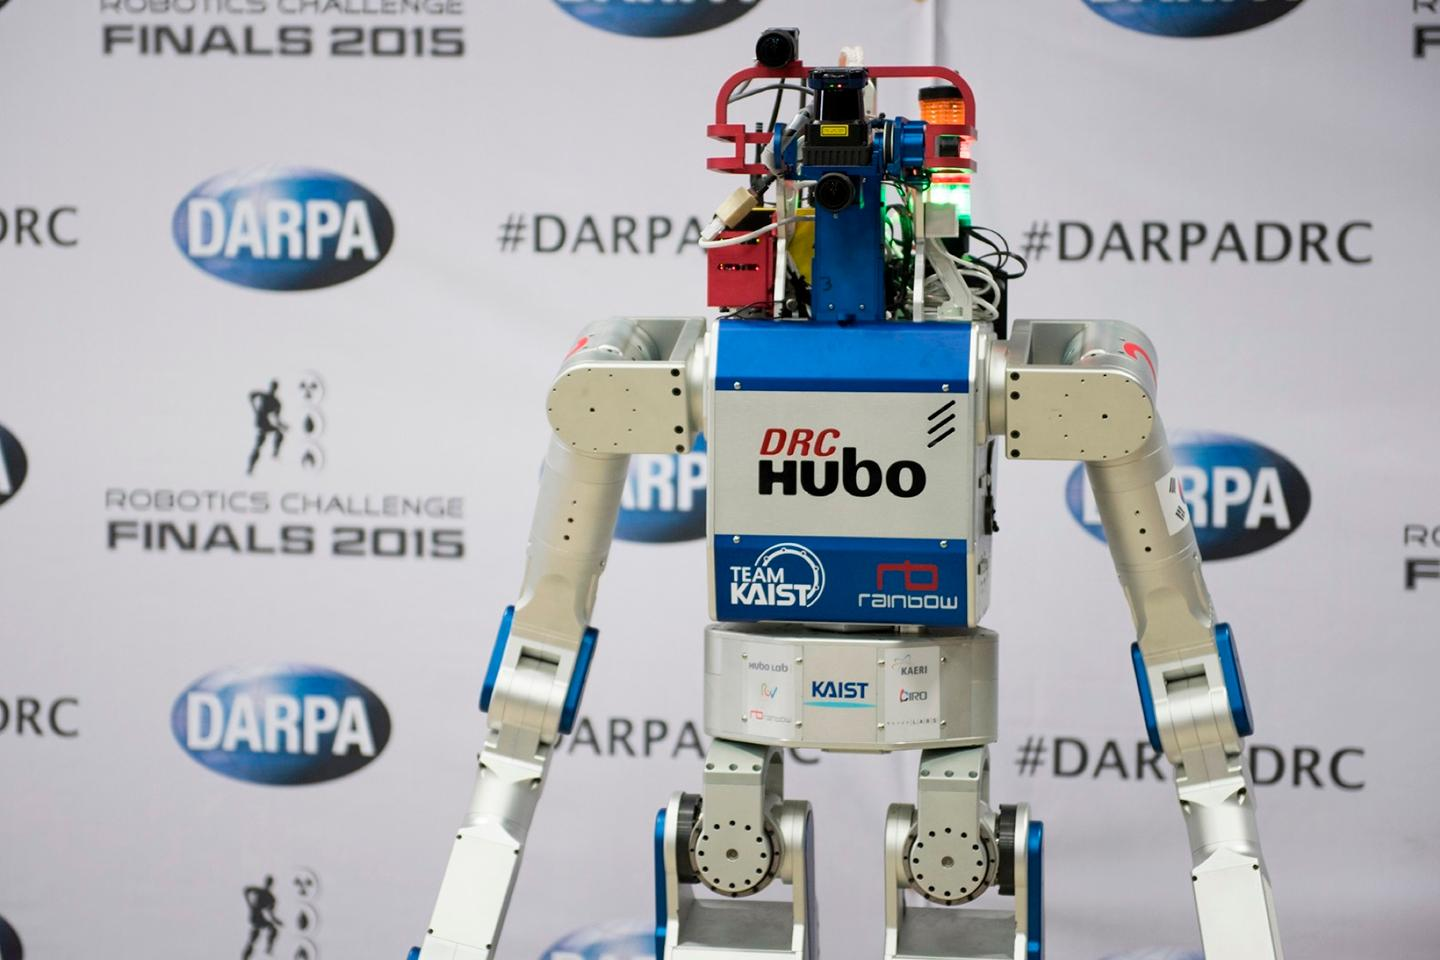 KAIST's DRC-HUBO took first place